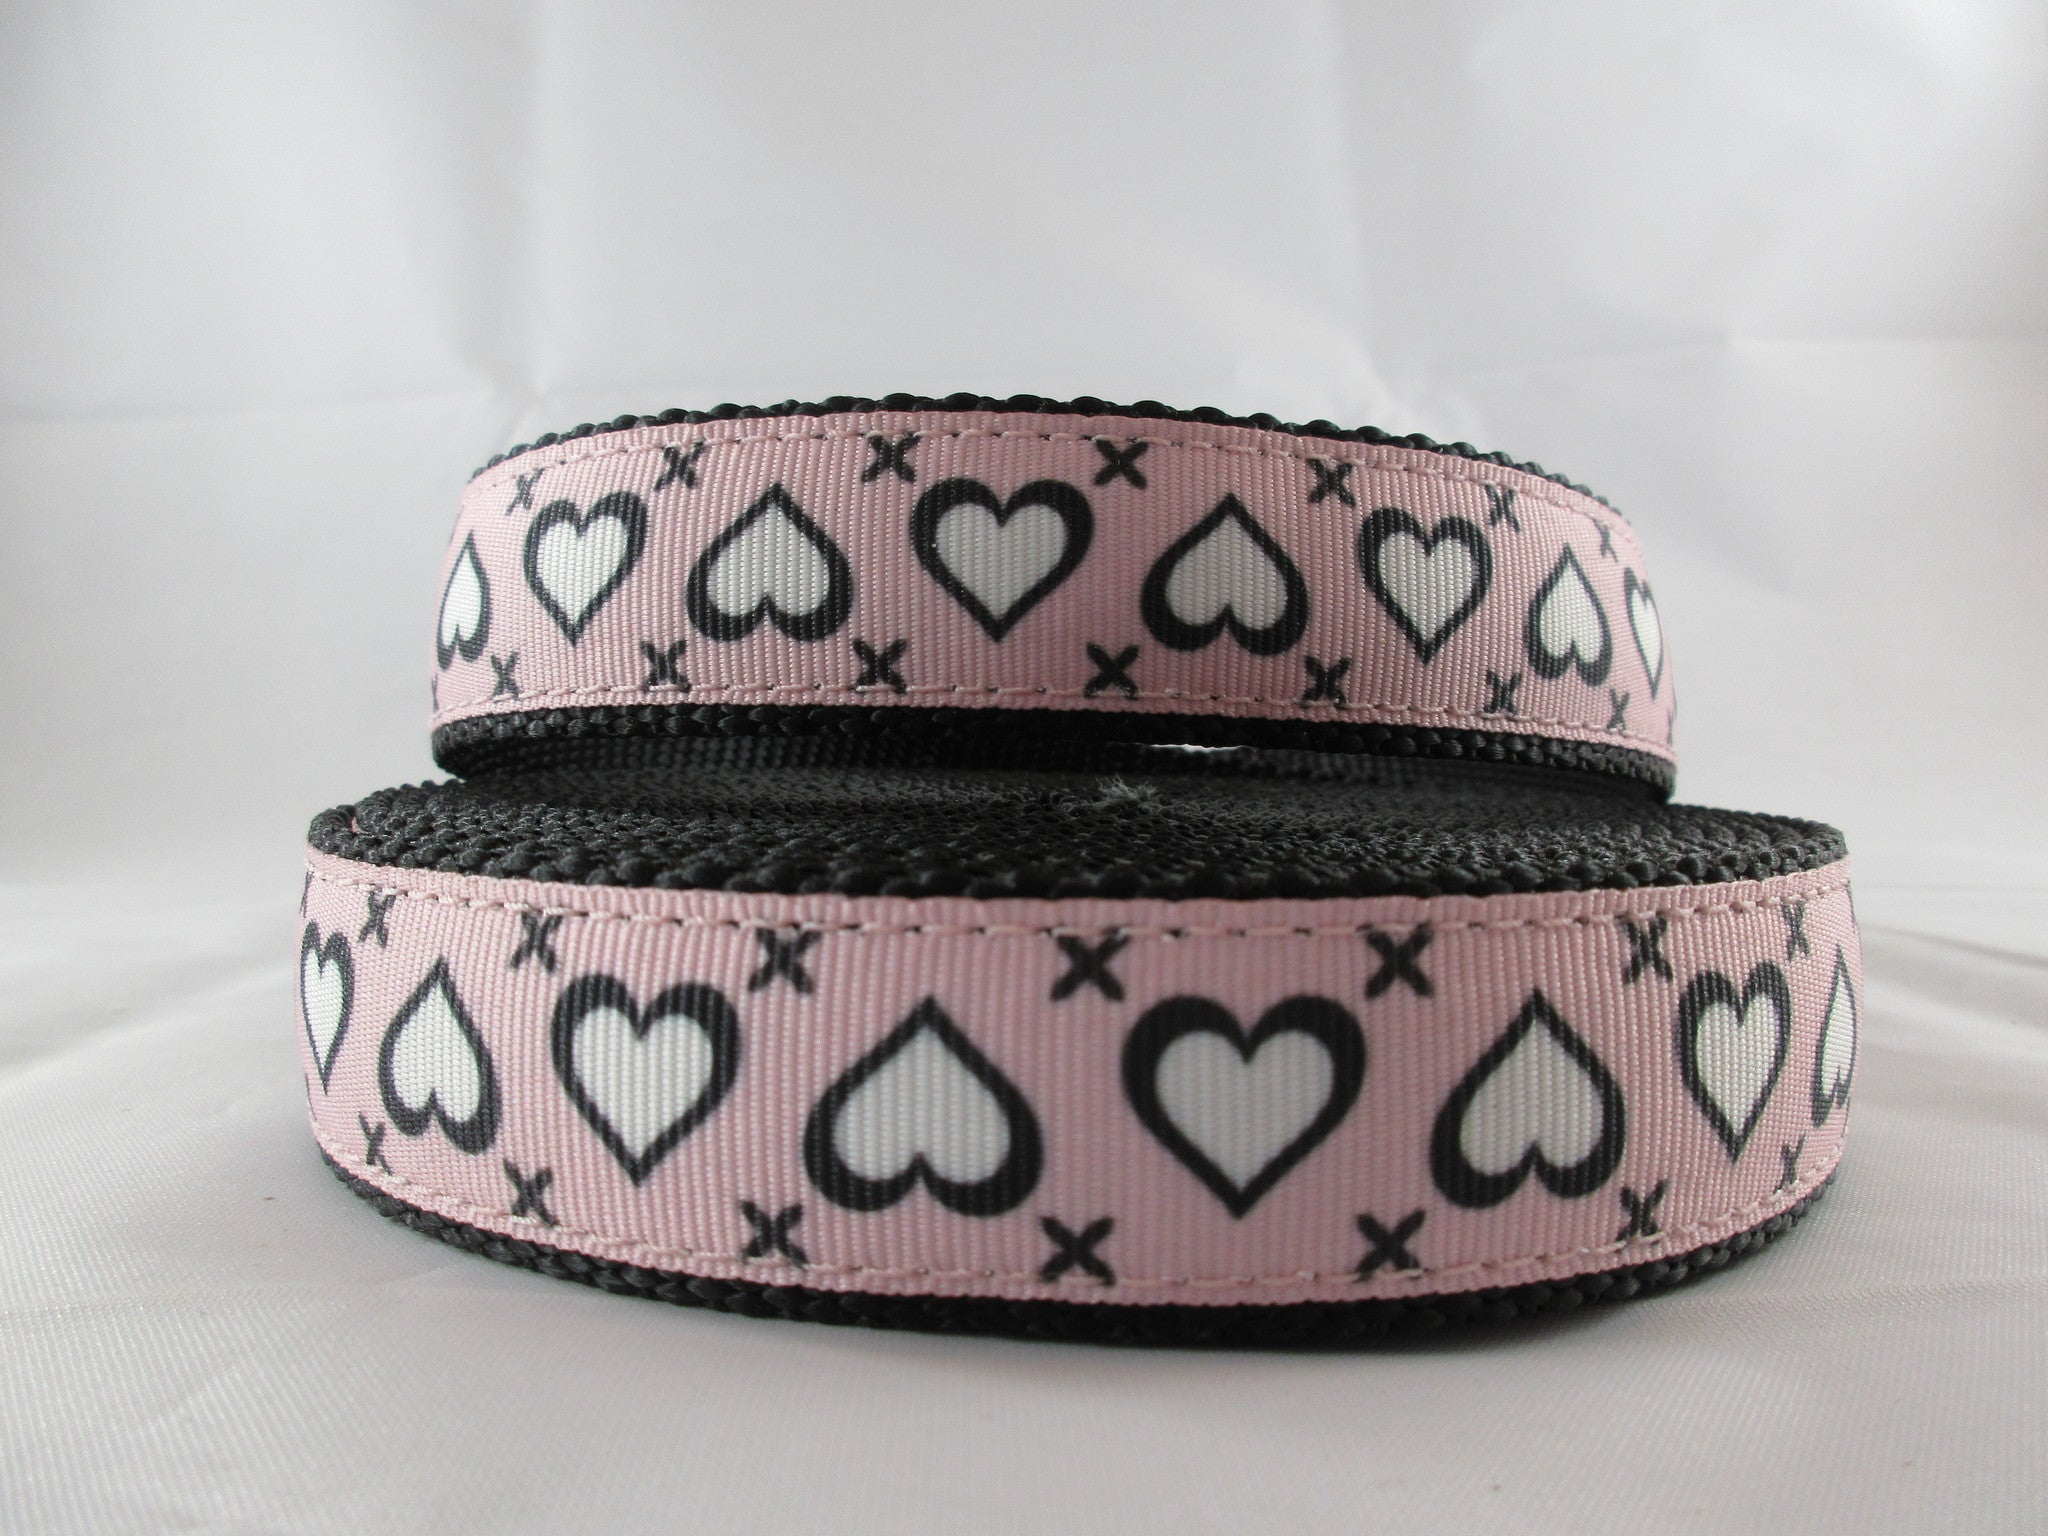 "1"" Stitched Hearts Pig Harness - Penny and Hoover's Pig Pen"